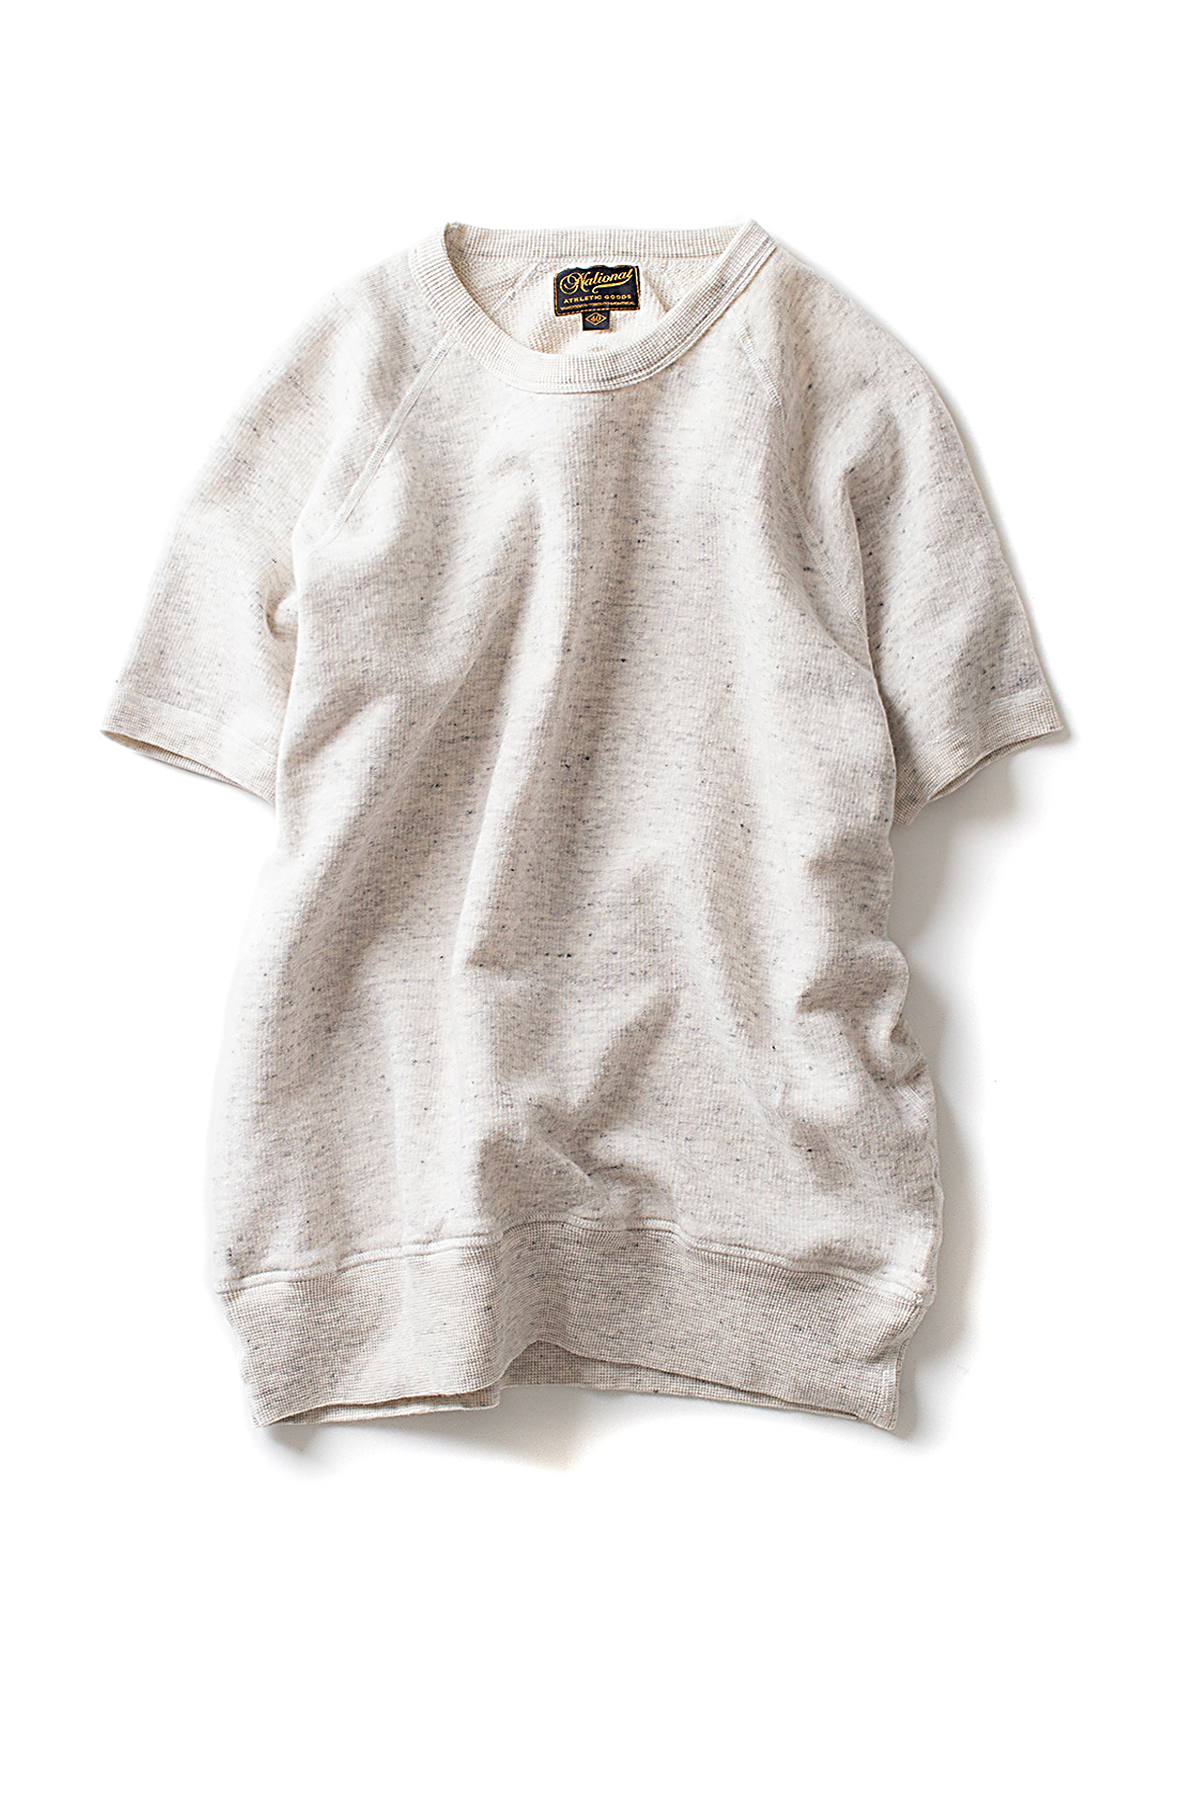 NAG : Raglan warm up S/S (Oat Haze)